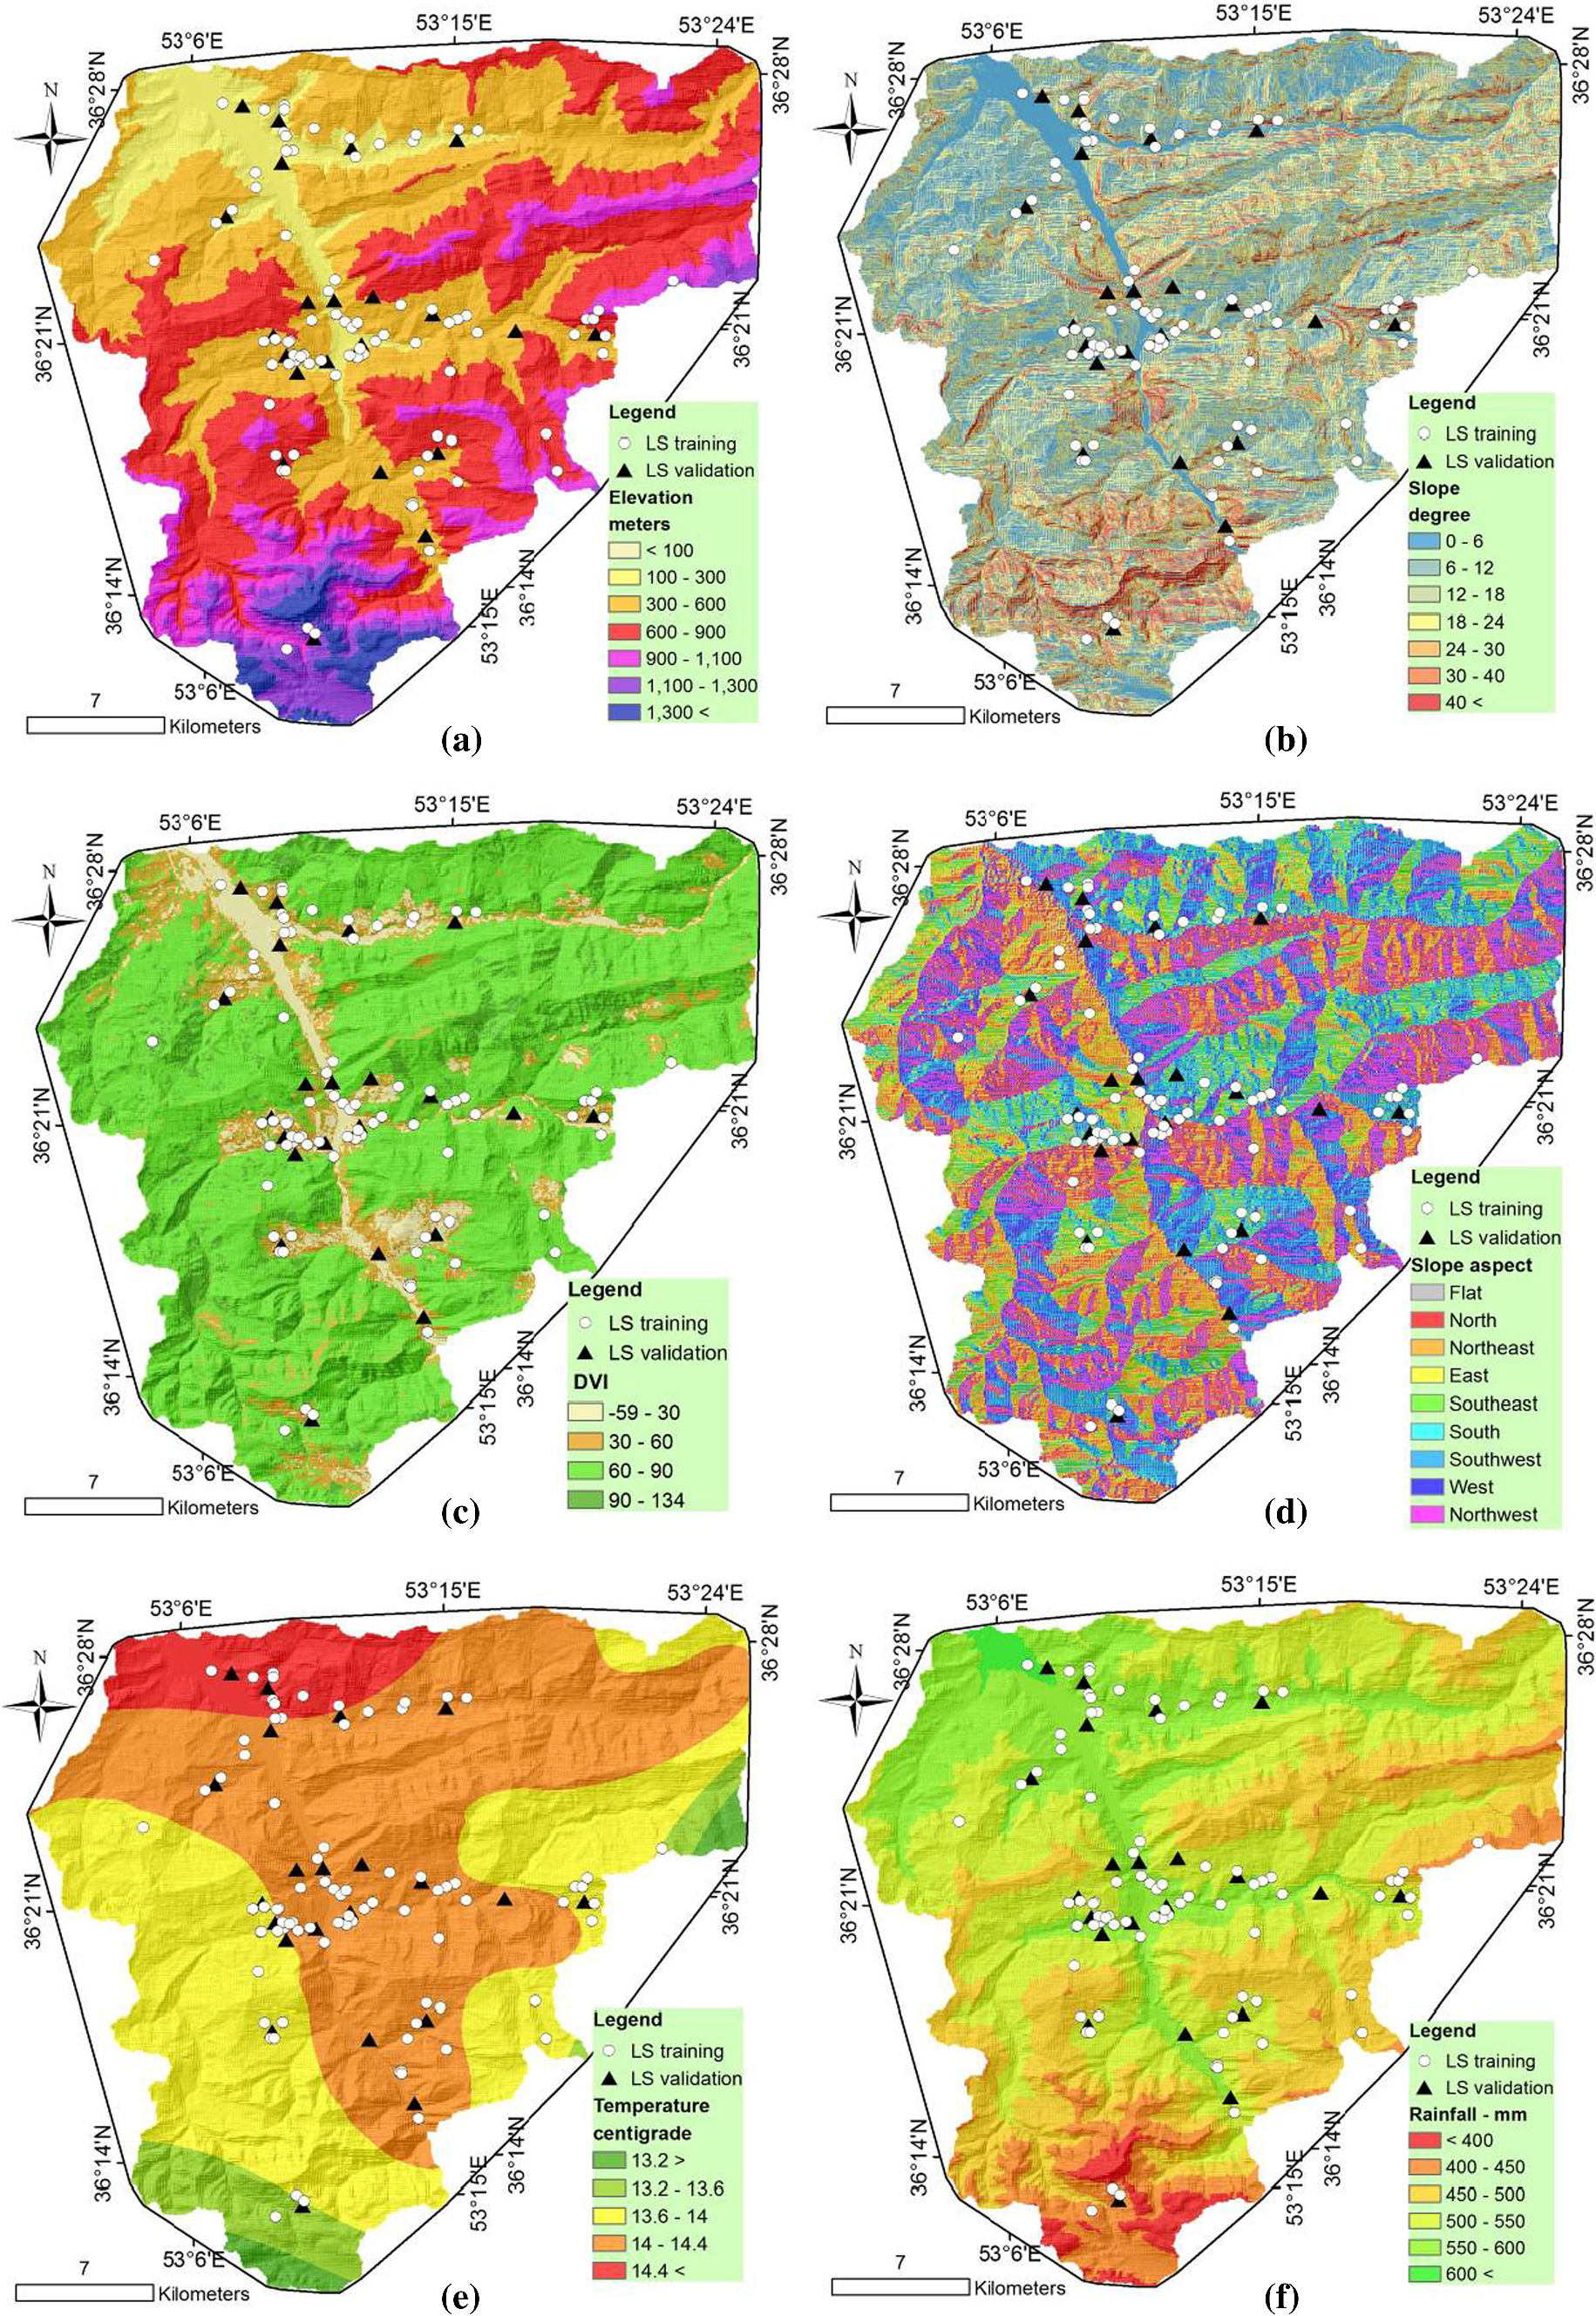 Landslide prediction capability by comparison of frequency ratio